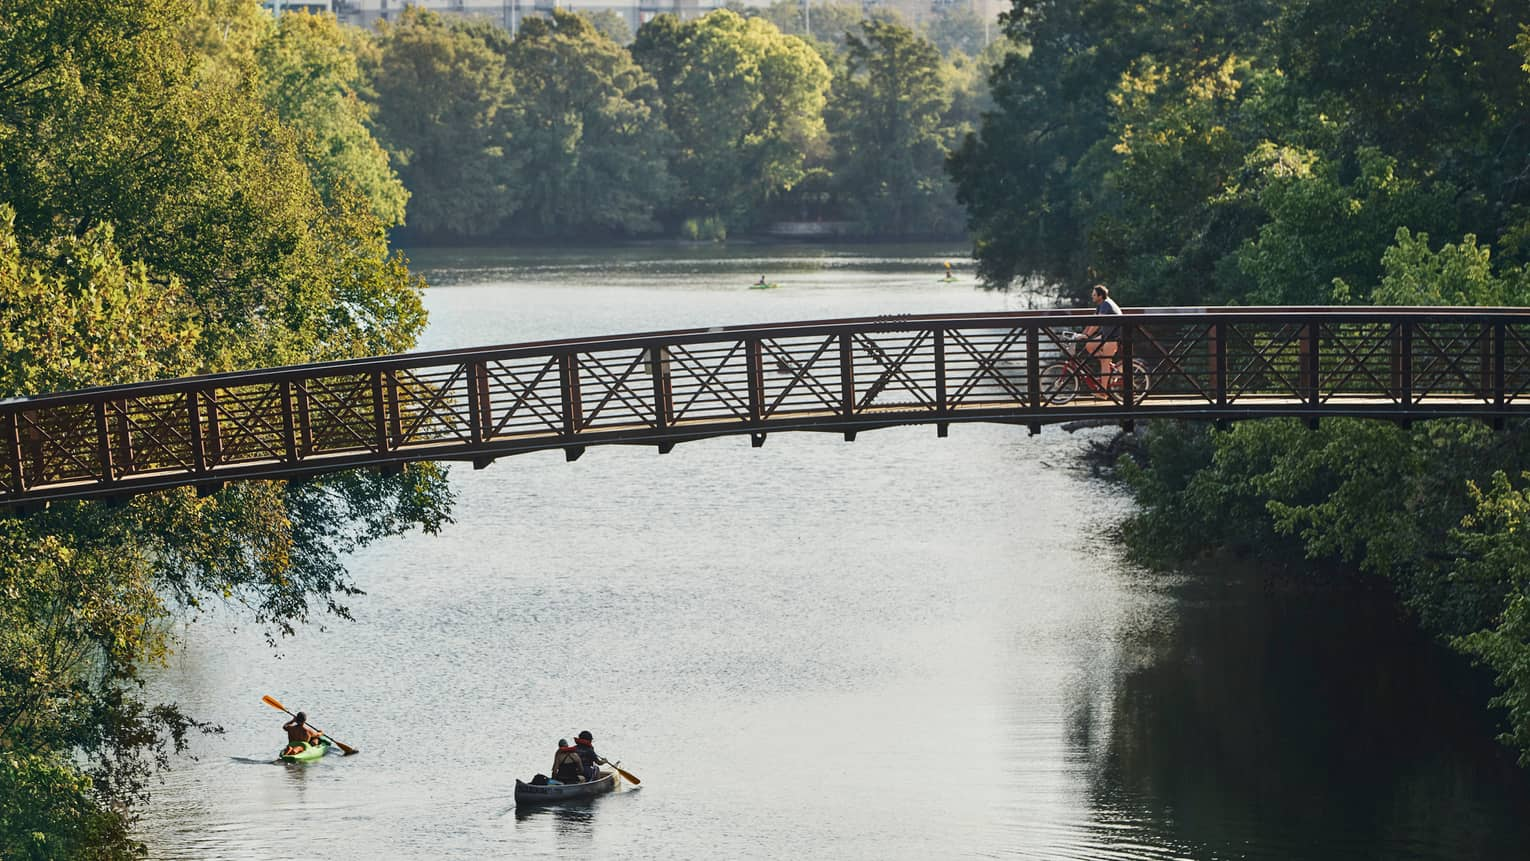 People in kayak, canoe on lake under cyclist on foot bridge